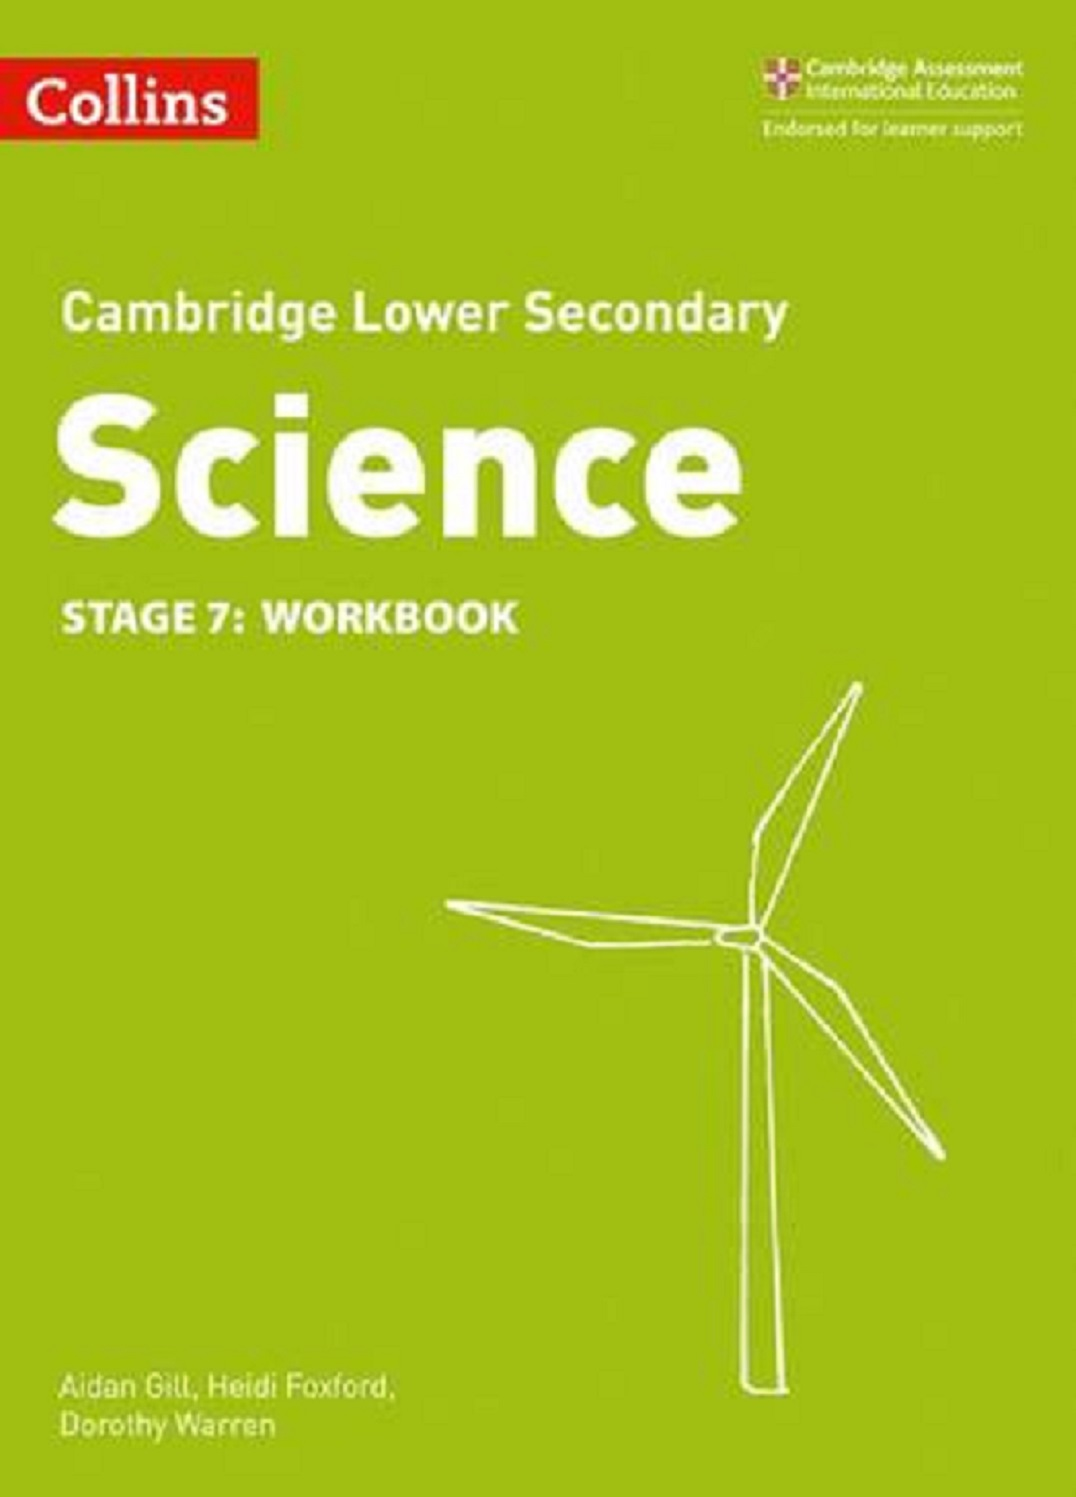 Collins Science Stage 7 Work Book Grade 6